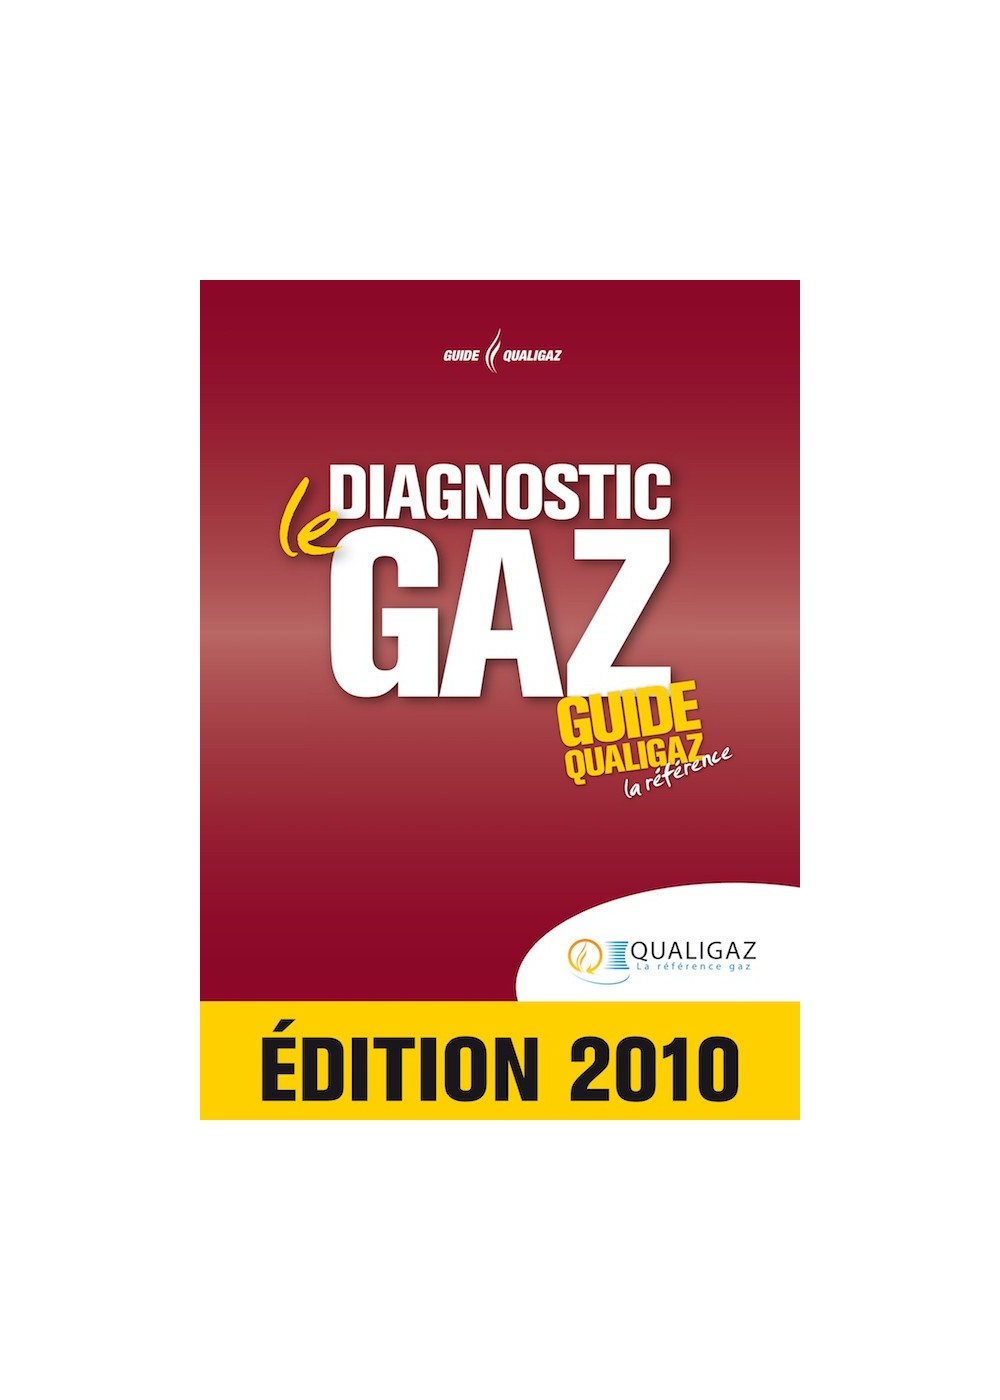 guide qualigaz le diagnostic gaz. Black Bedroom Furniture Sets. Home Design Ideas